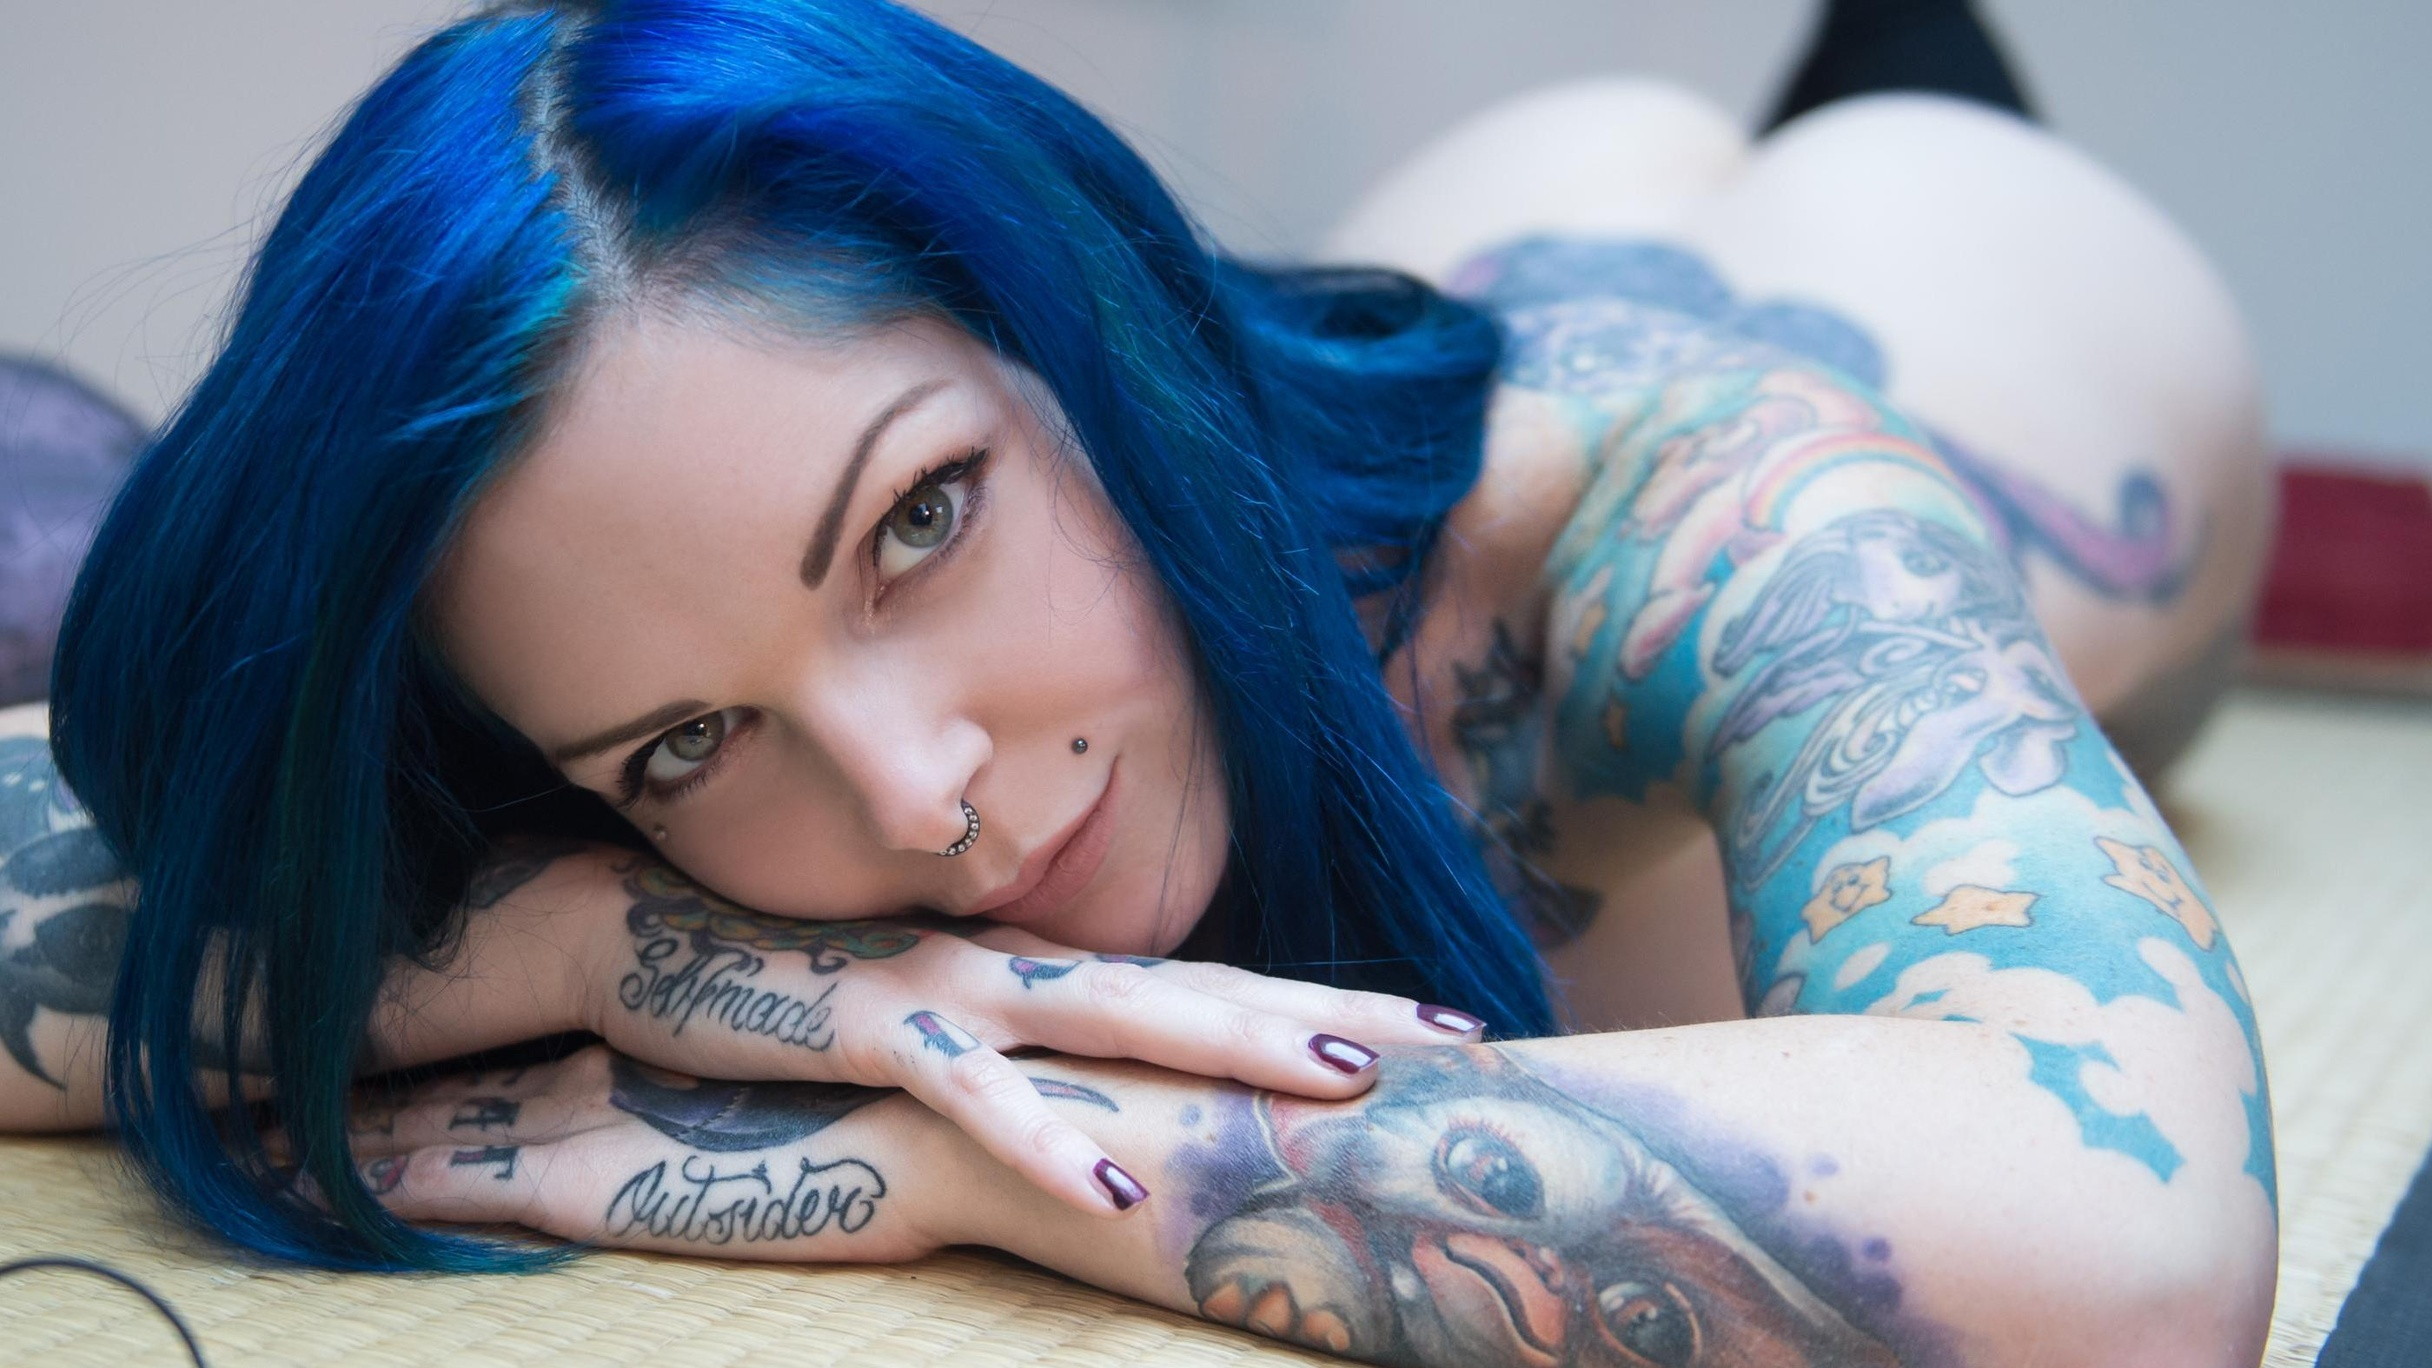 Riae Suicide  - Let The Musi suicidegirls @riae goddes,hint,butthole,wanna,cuddle